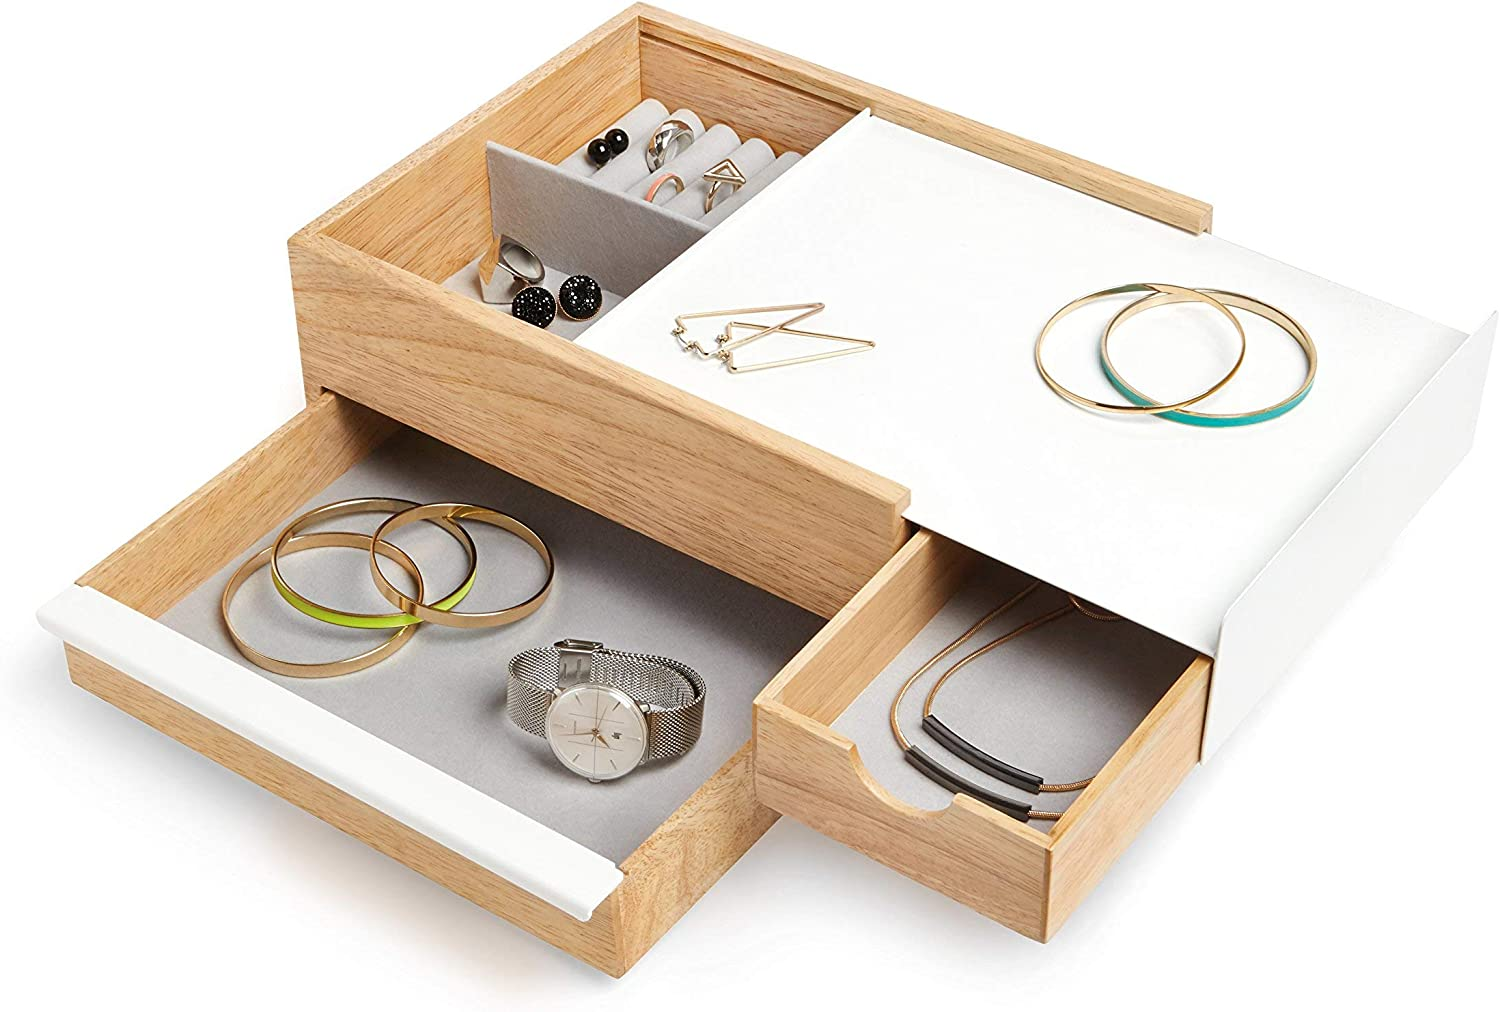 Umbra Stowit Jewelry Box - Modern Keepsake Storage Organizer with Hidden Compartment Drawers for Ring, Bracelet, Watch, Necklace, Earrings, and Accessories (White / Natural)